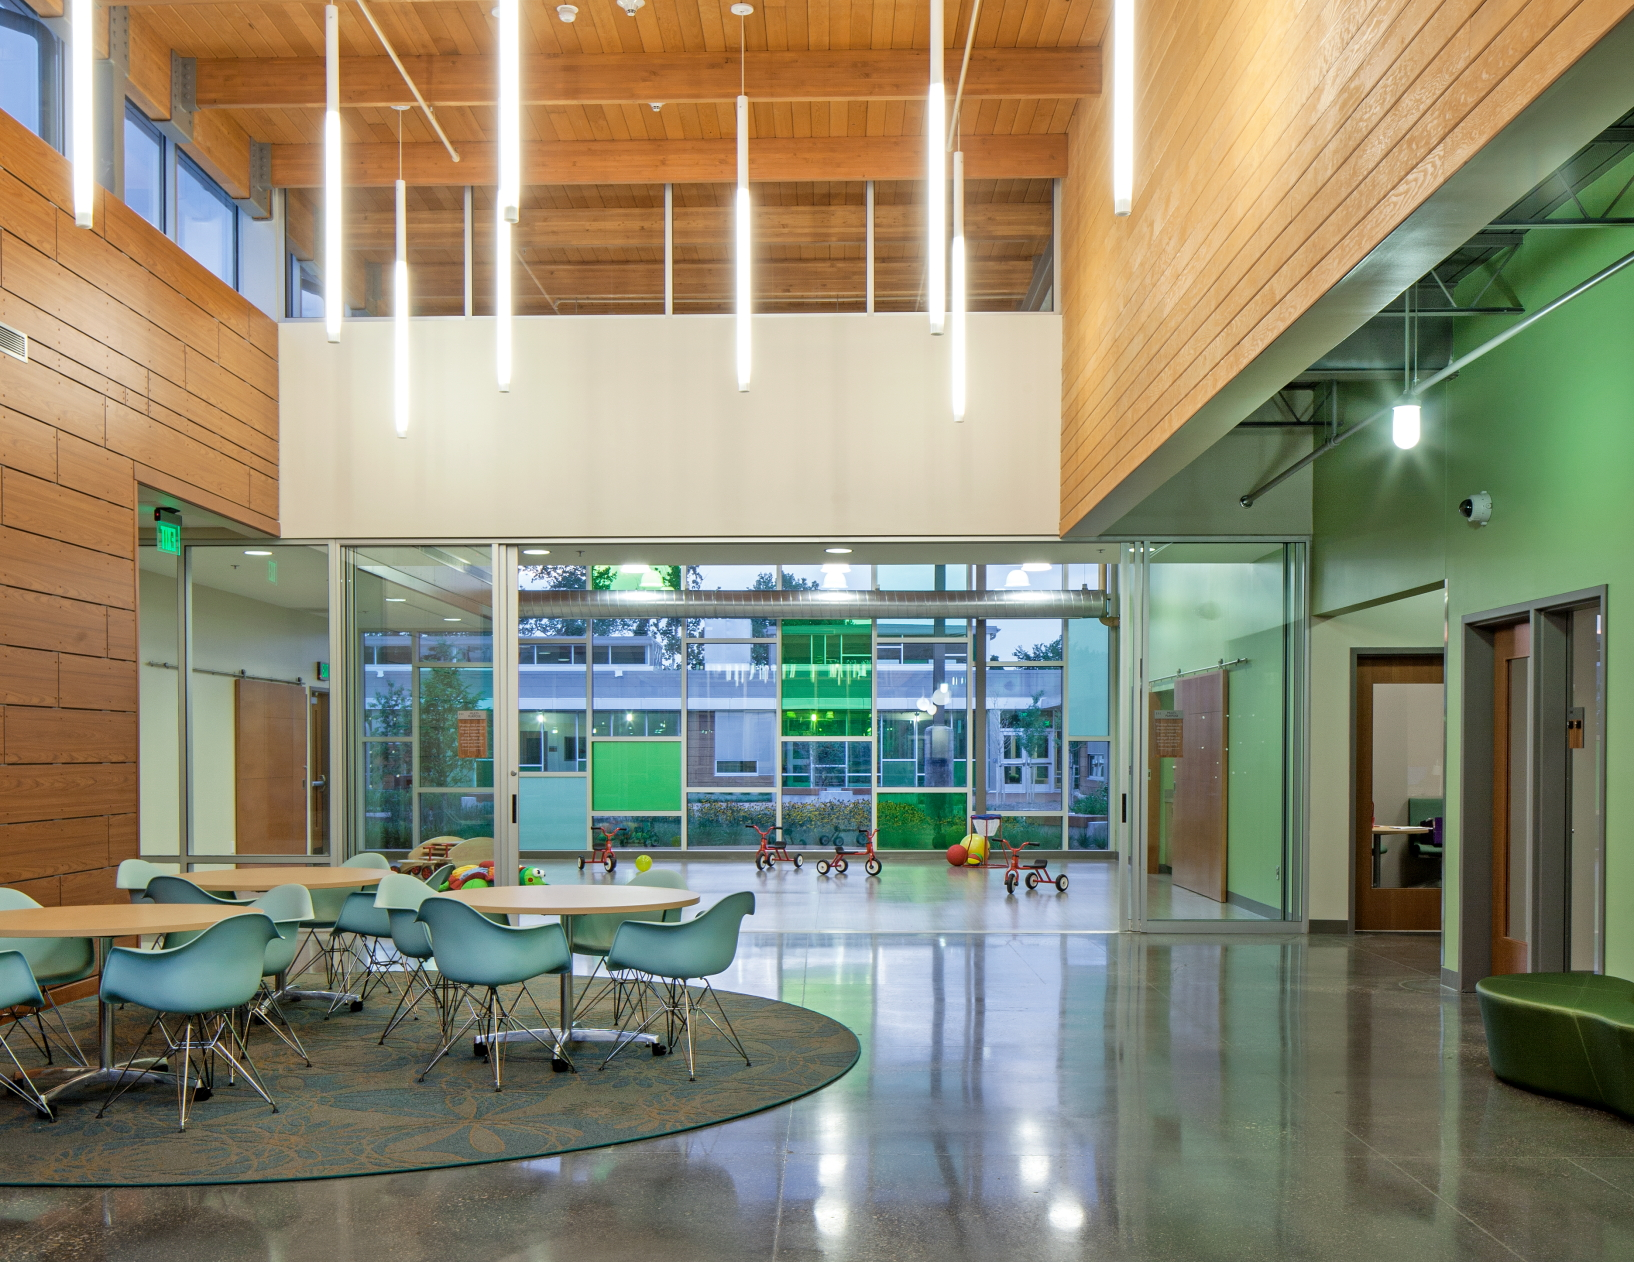 Lincoln DC Educare Schools Honored For Design